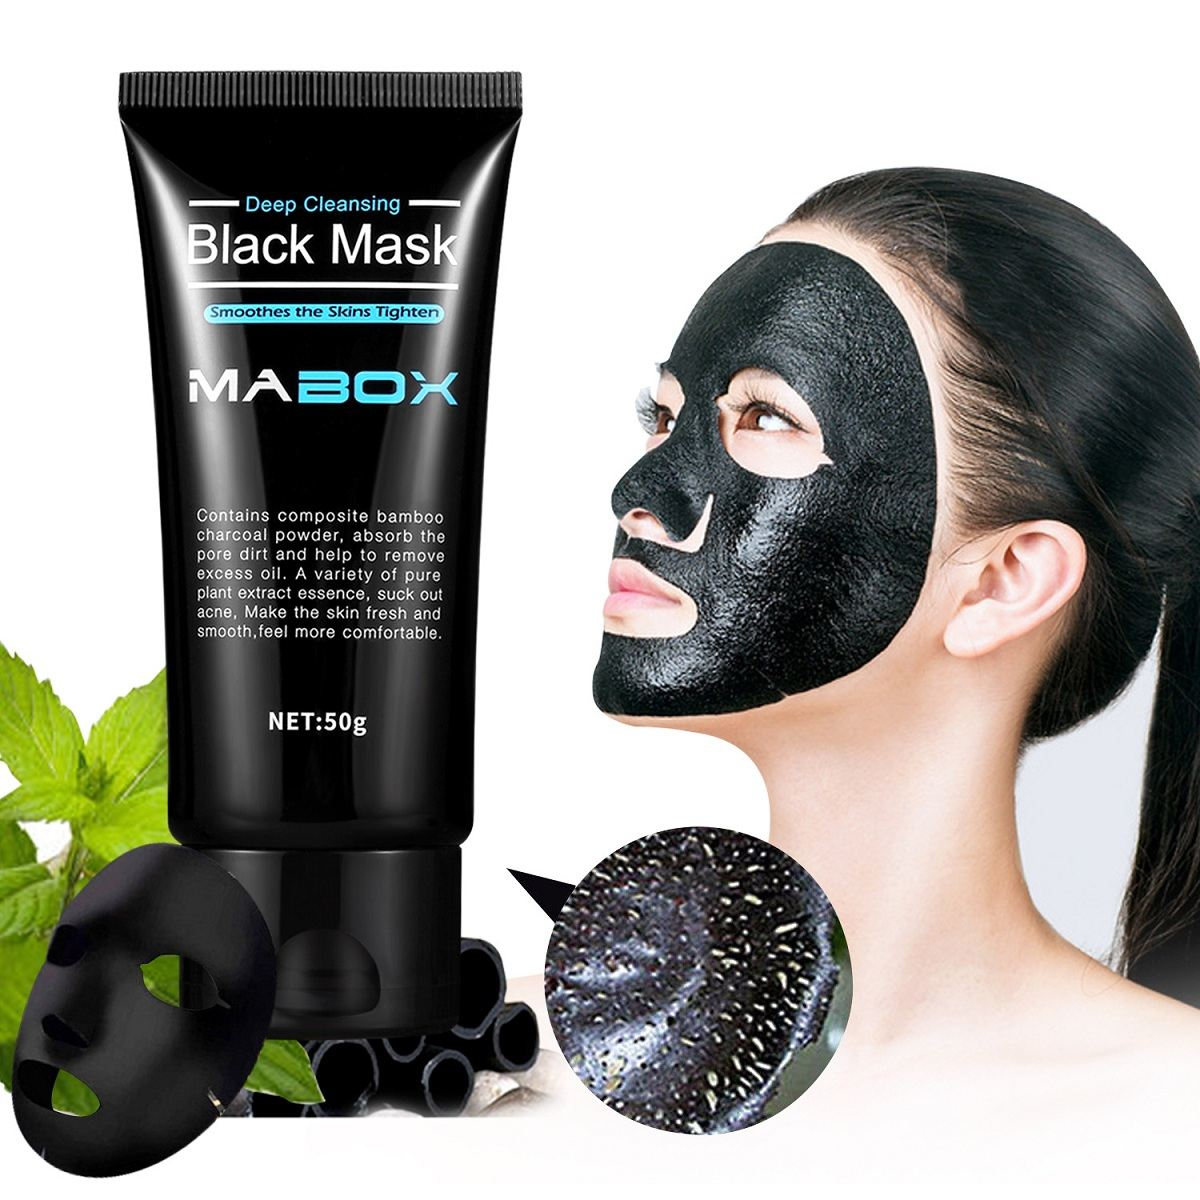 Blackhead Remover Mask Deep Cleansing Face Charcoal Black Peel Off Mask Farewell Strawberry  Black Mask Peel Off Bamboo Toiletry